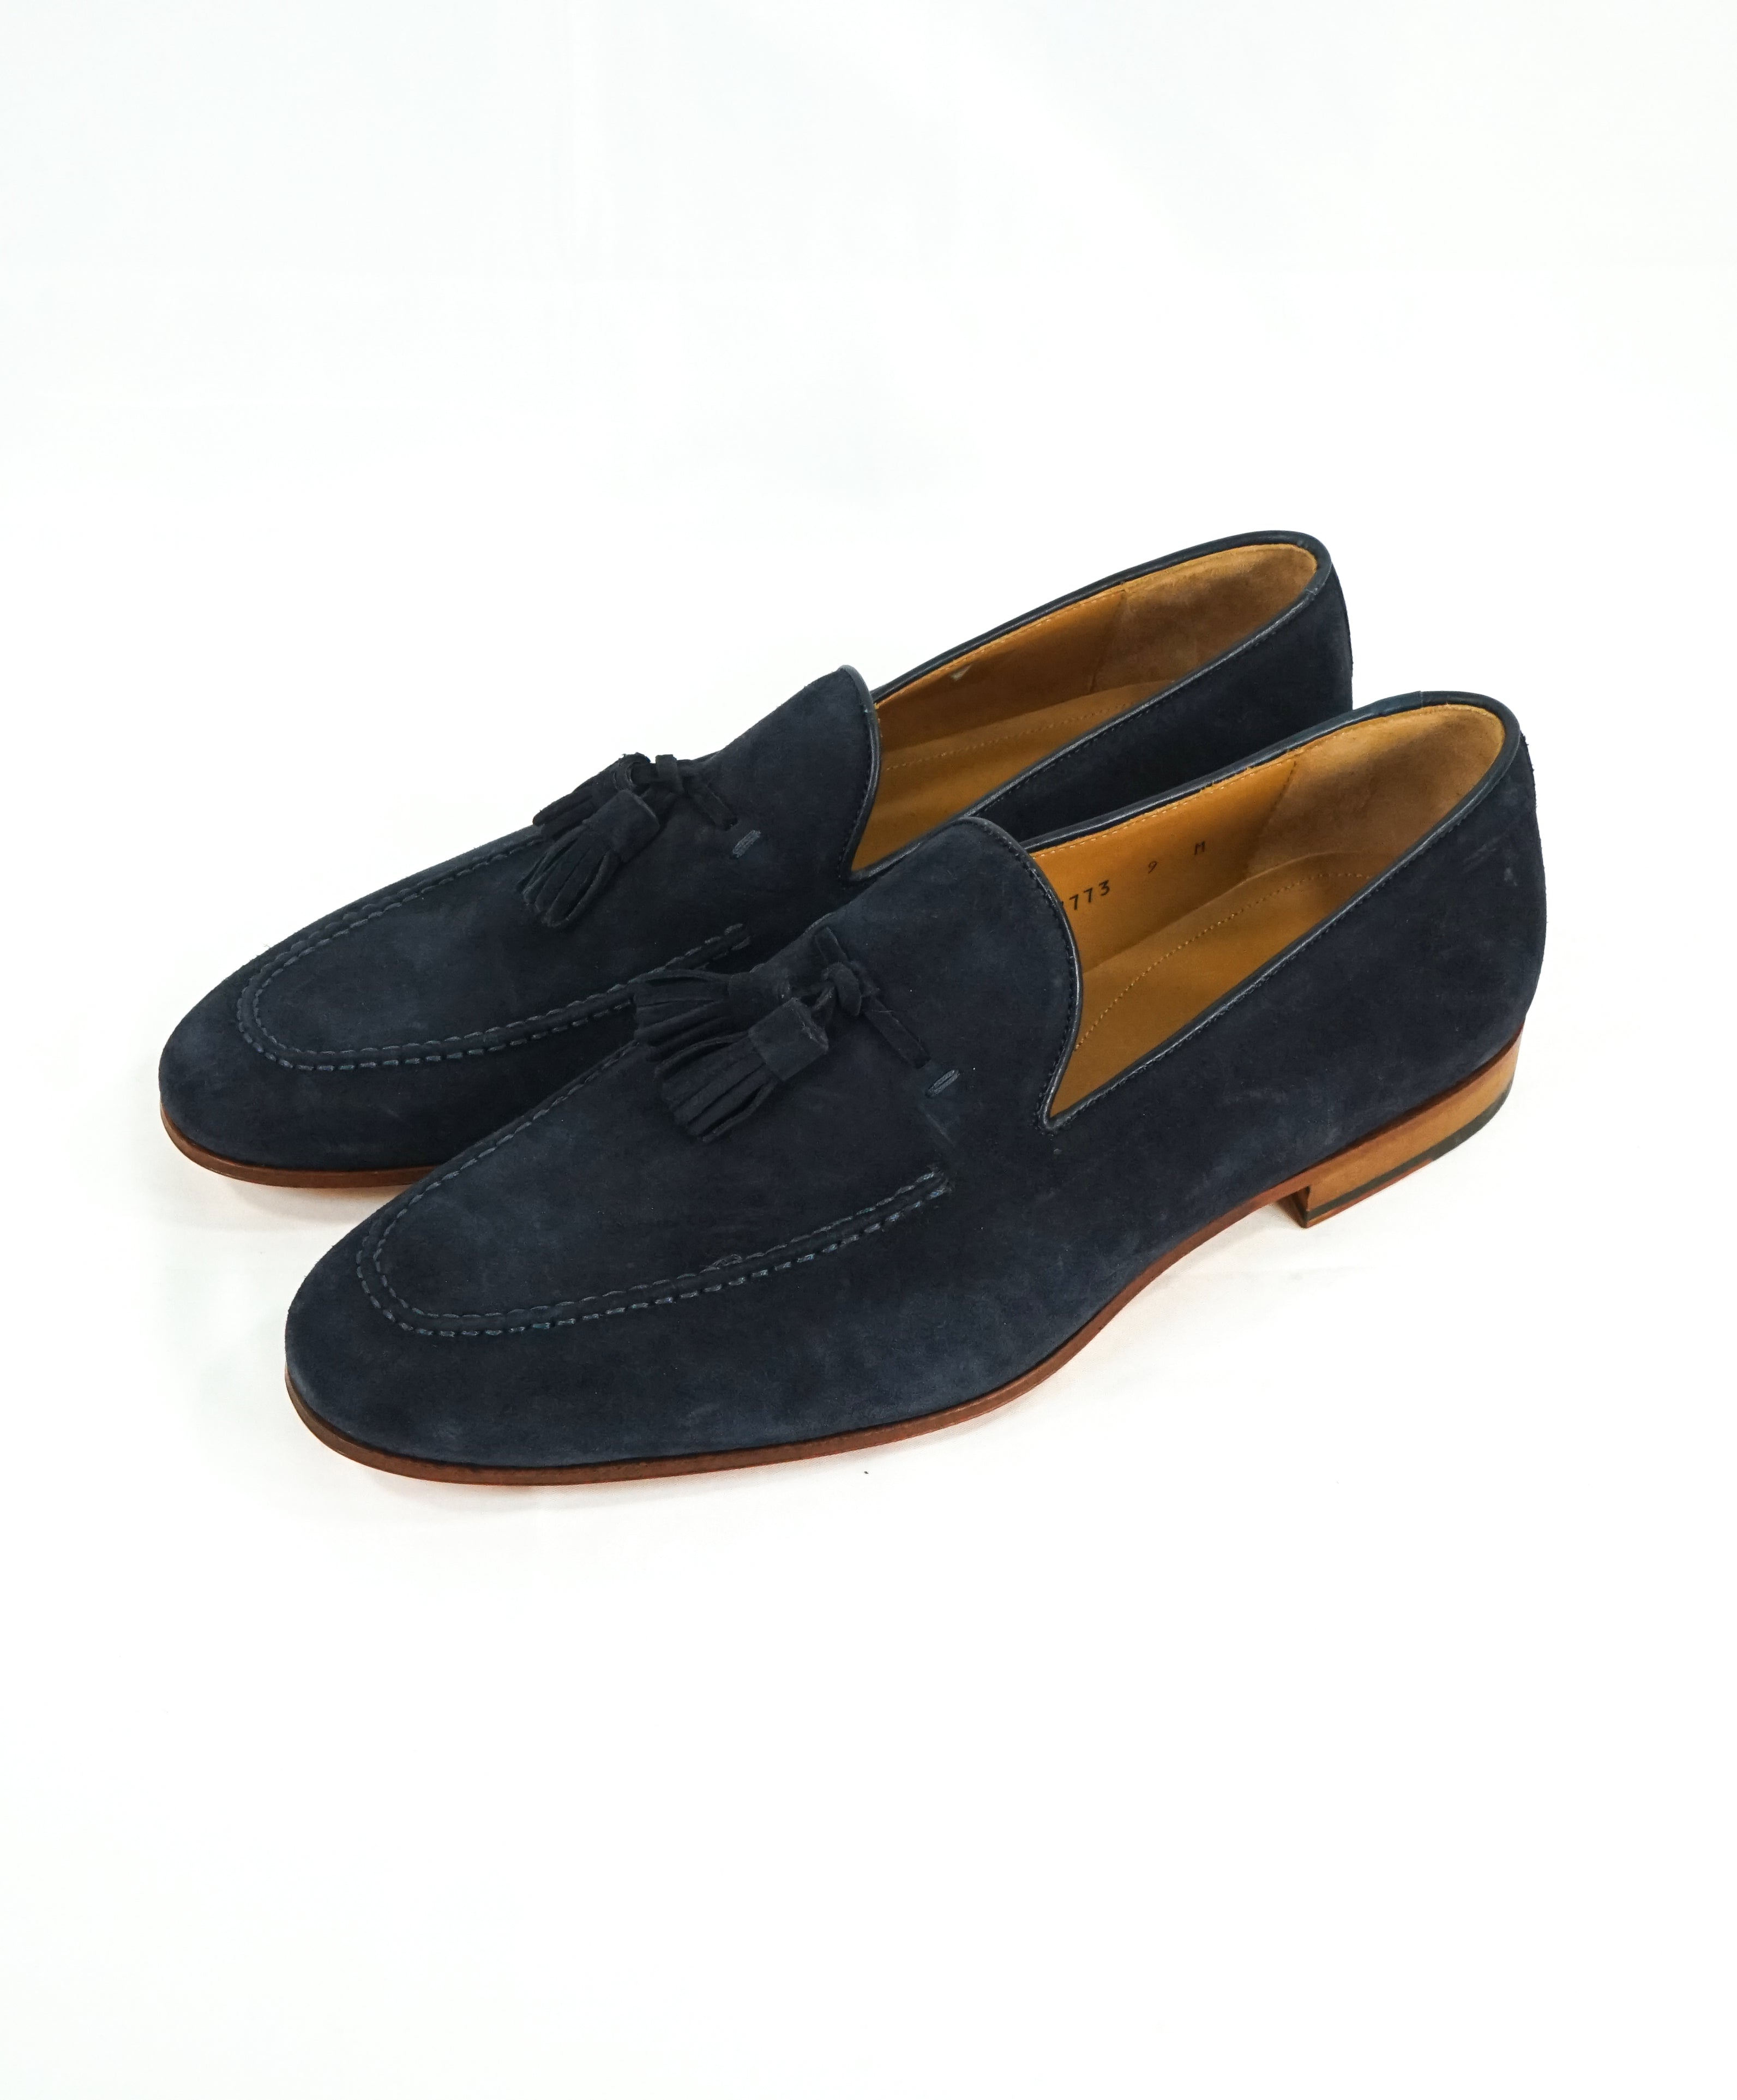 MAGNANNI For SAKS FIFTH AVENUE - Blue Contrast Sole Tassel Loafers - 9